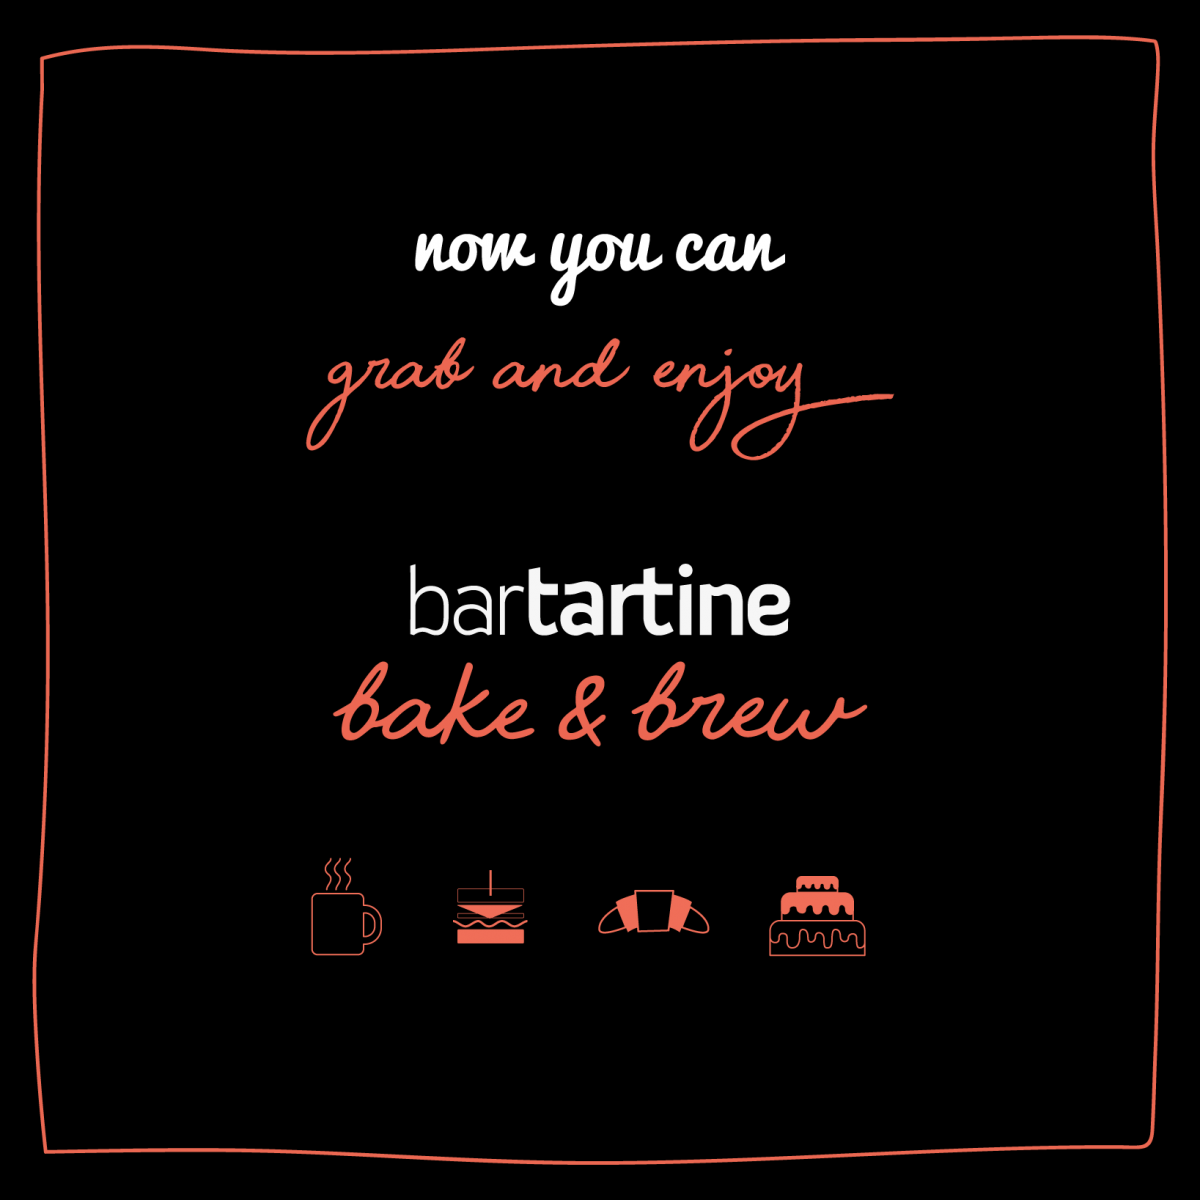 Bartartine Bake & Brew!